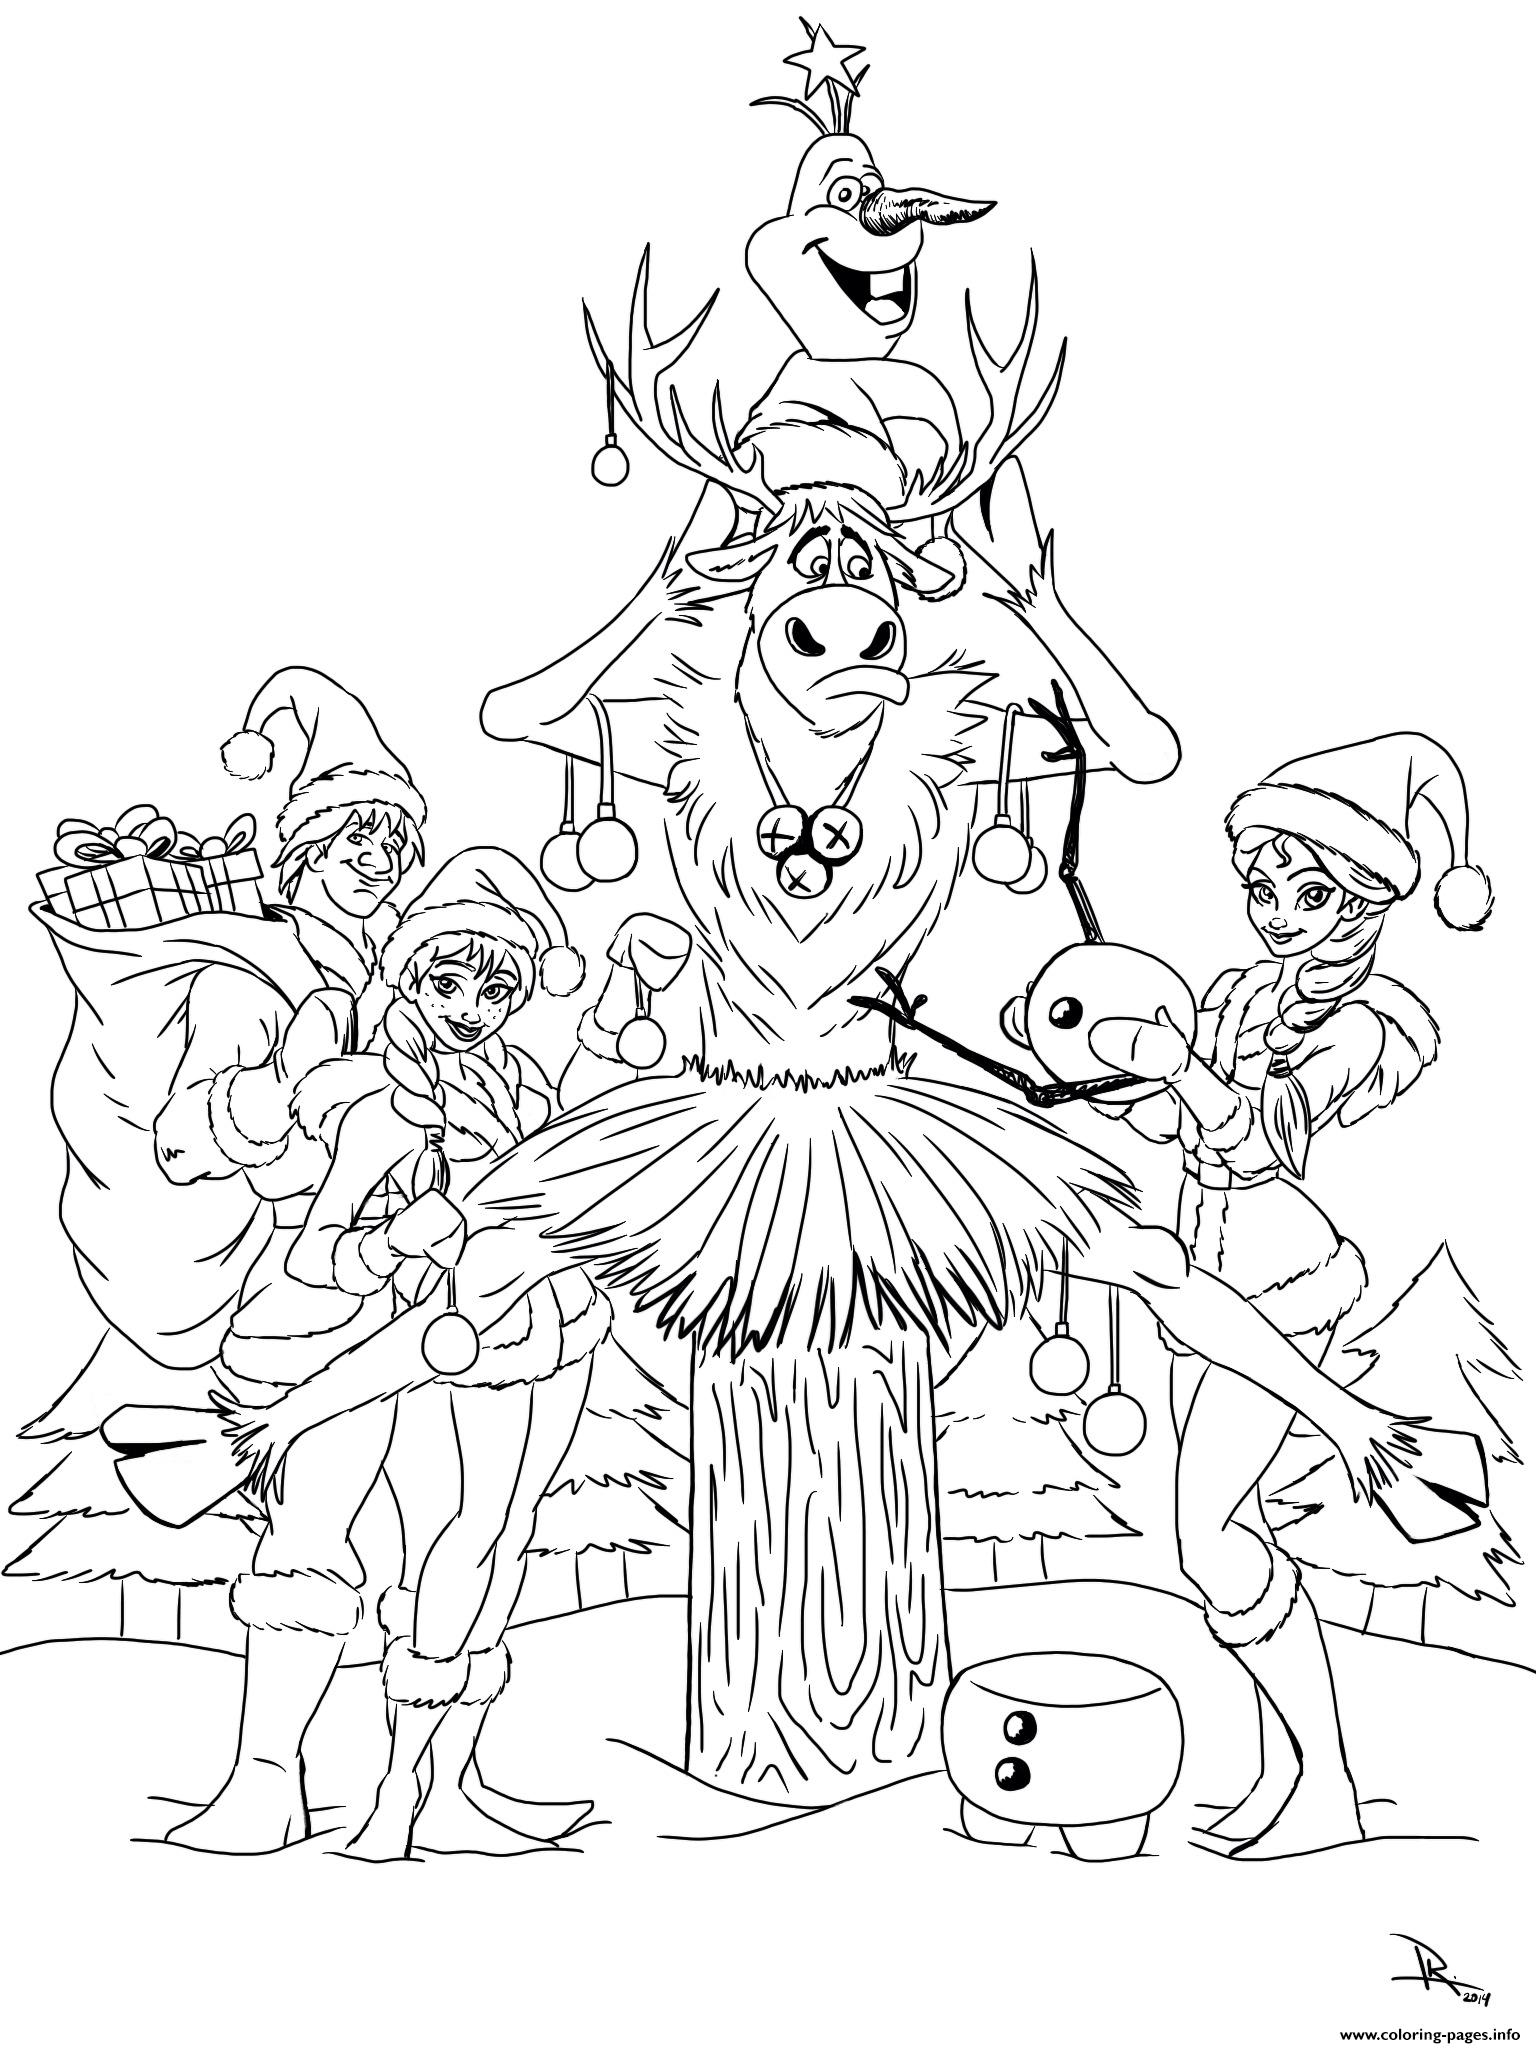 Frozen Christmas All Characters Coloring Pages Printable Inside Out